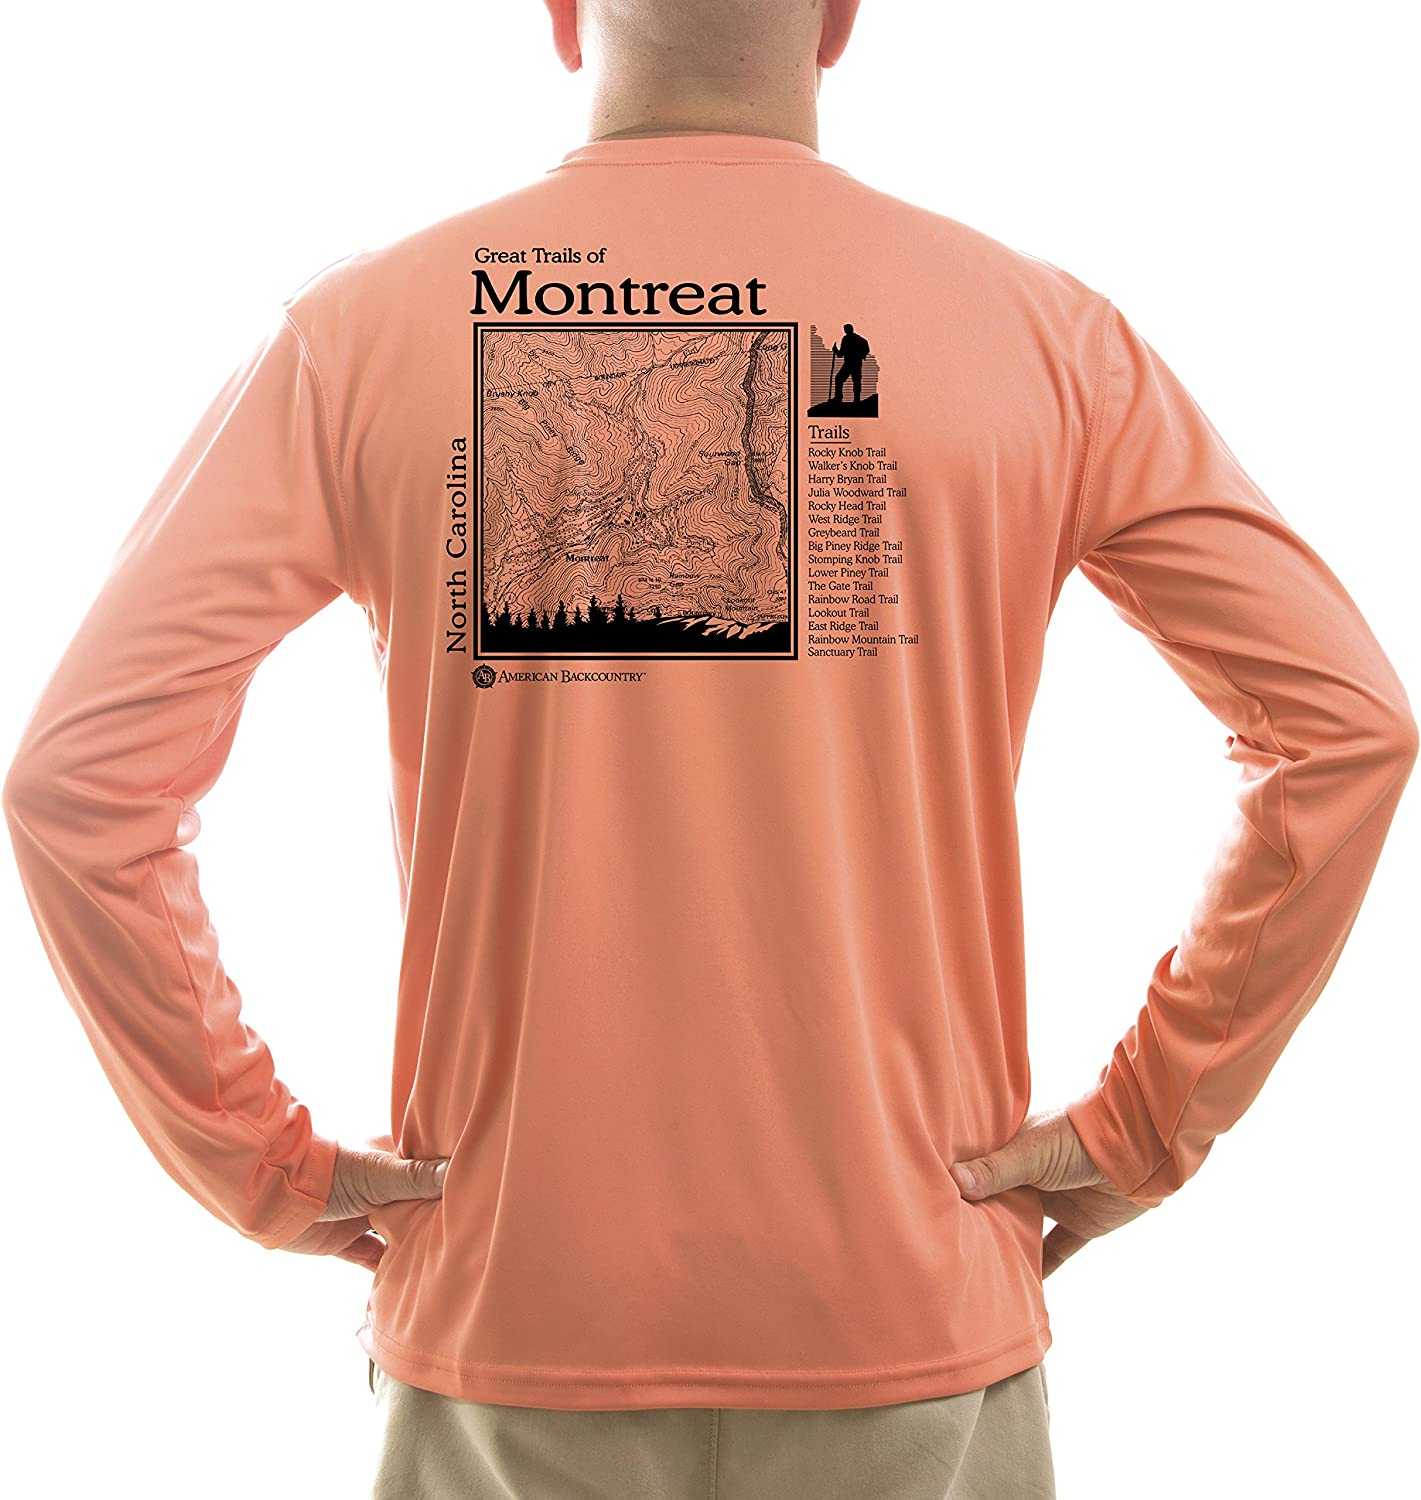 American Backcountry Mens Great Trails of Montreat UPF 50 Long Sleeve T-Shirt